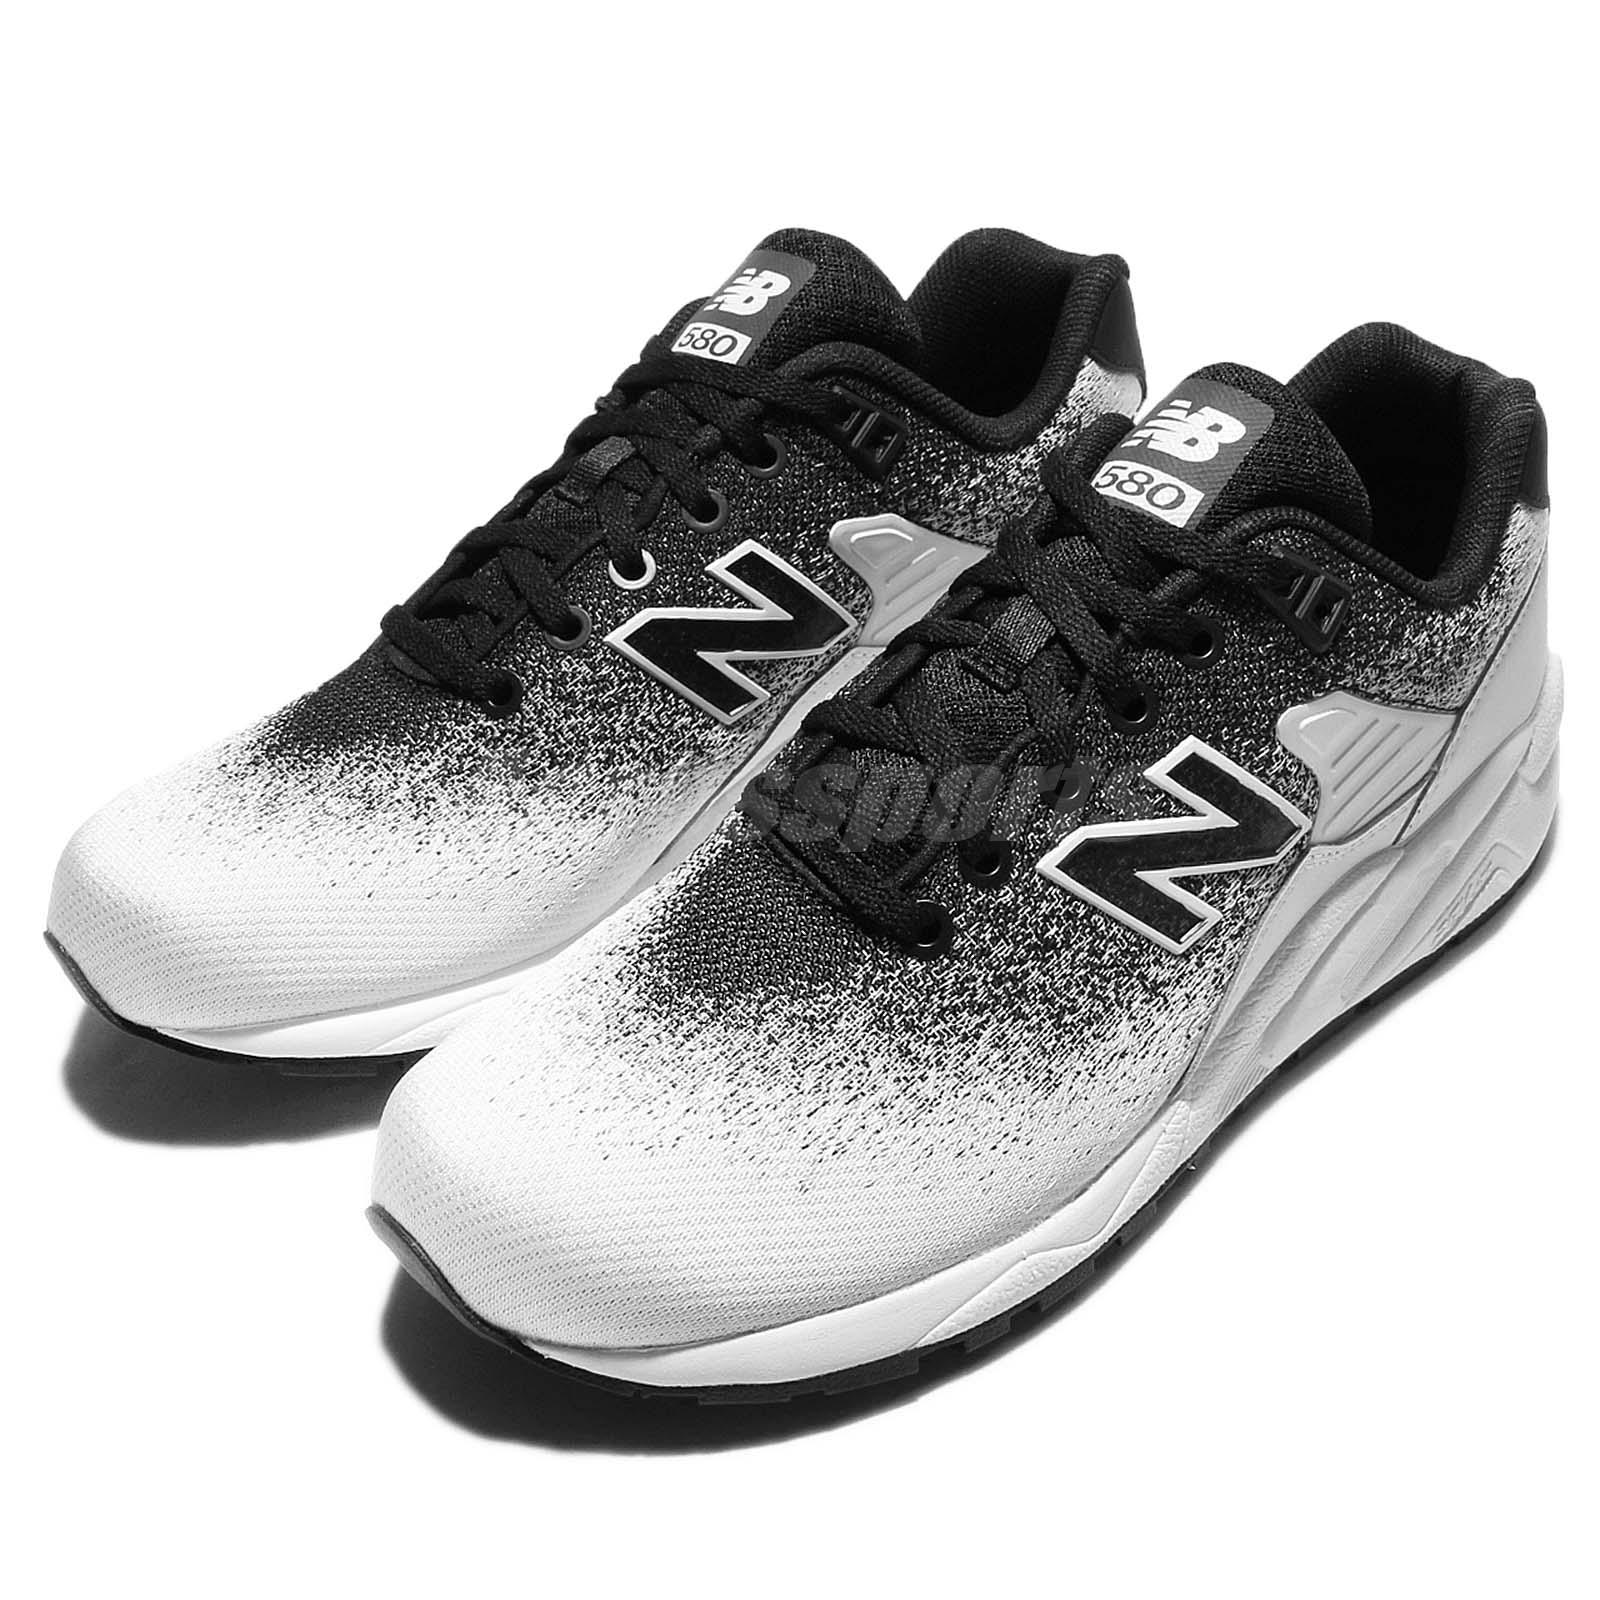 New Balance MRT580JR D White Black Men Running Shoes Sneakers MRT580JRD